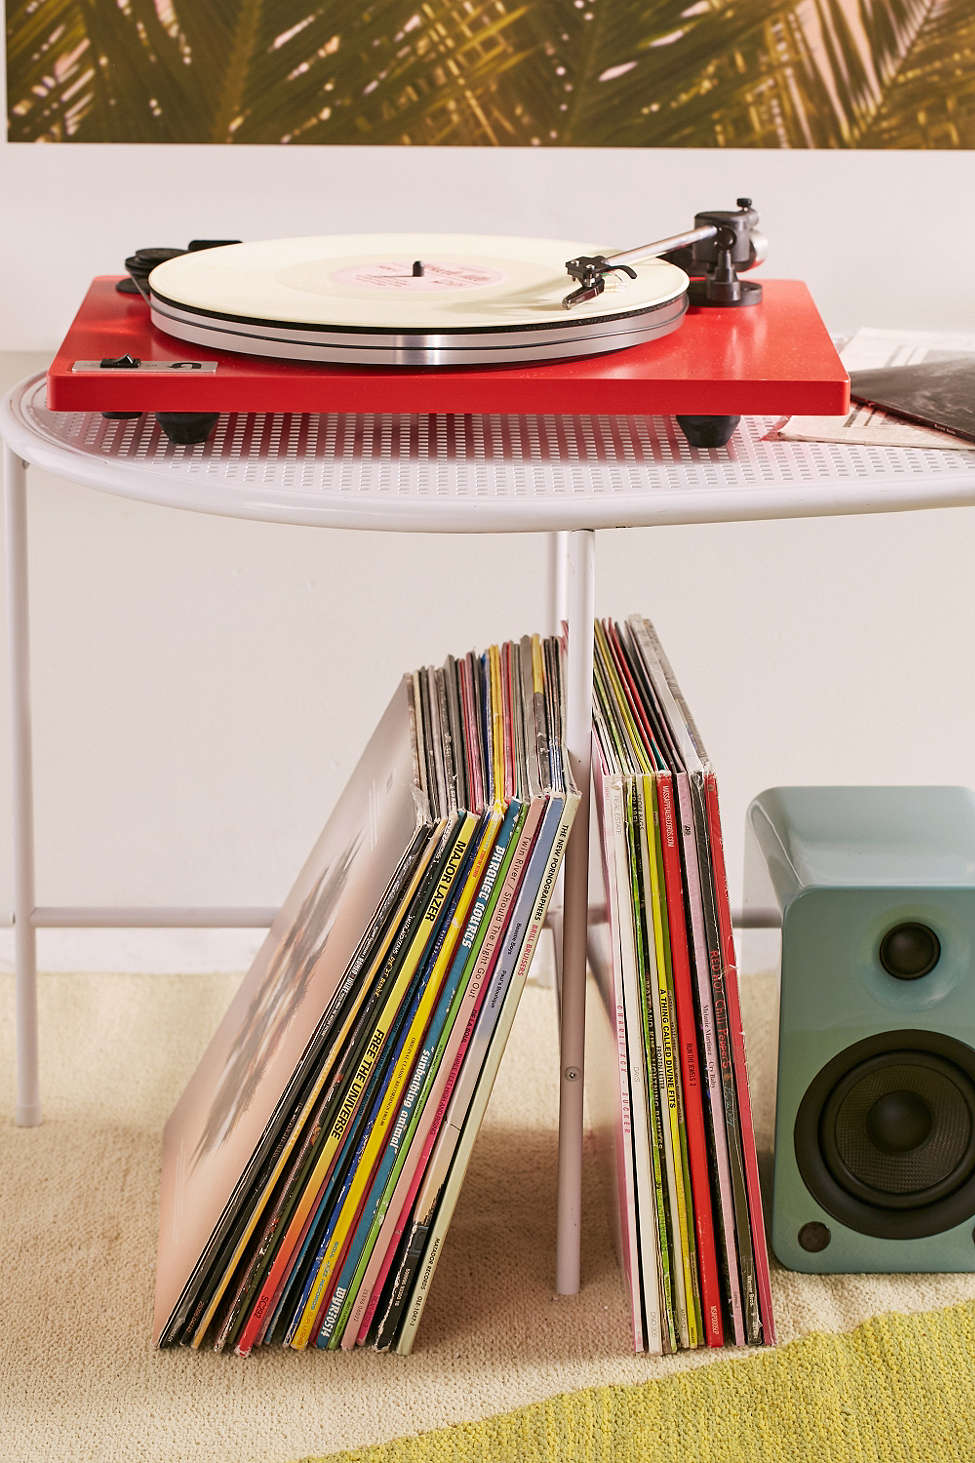 Turntable from Urban Outfitters